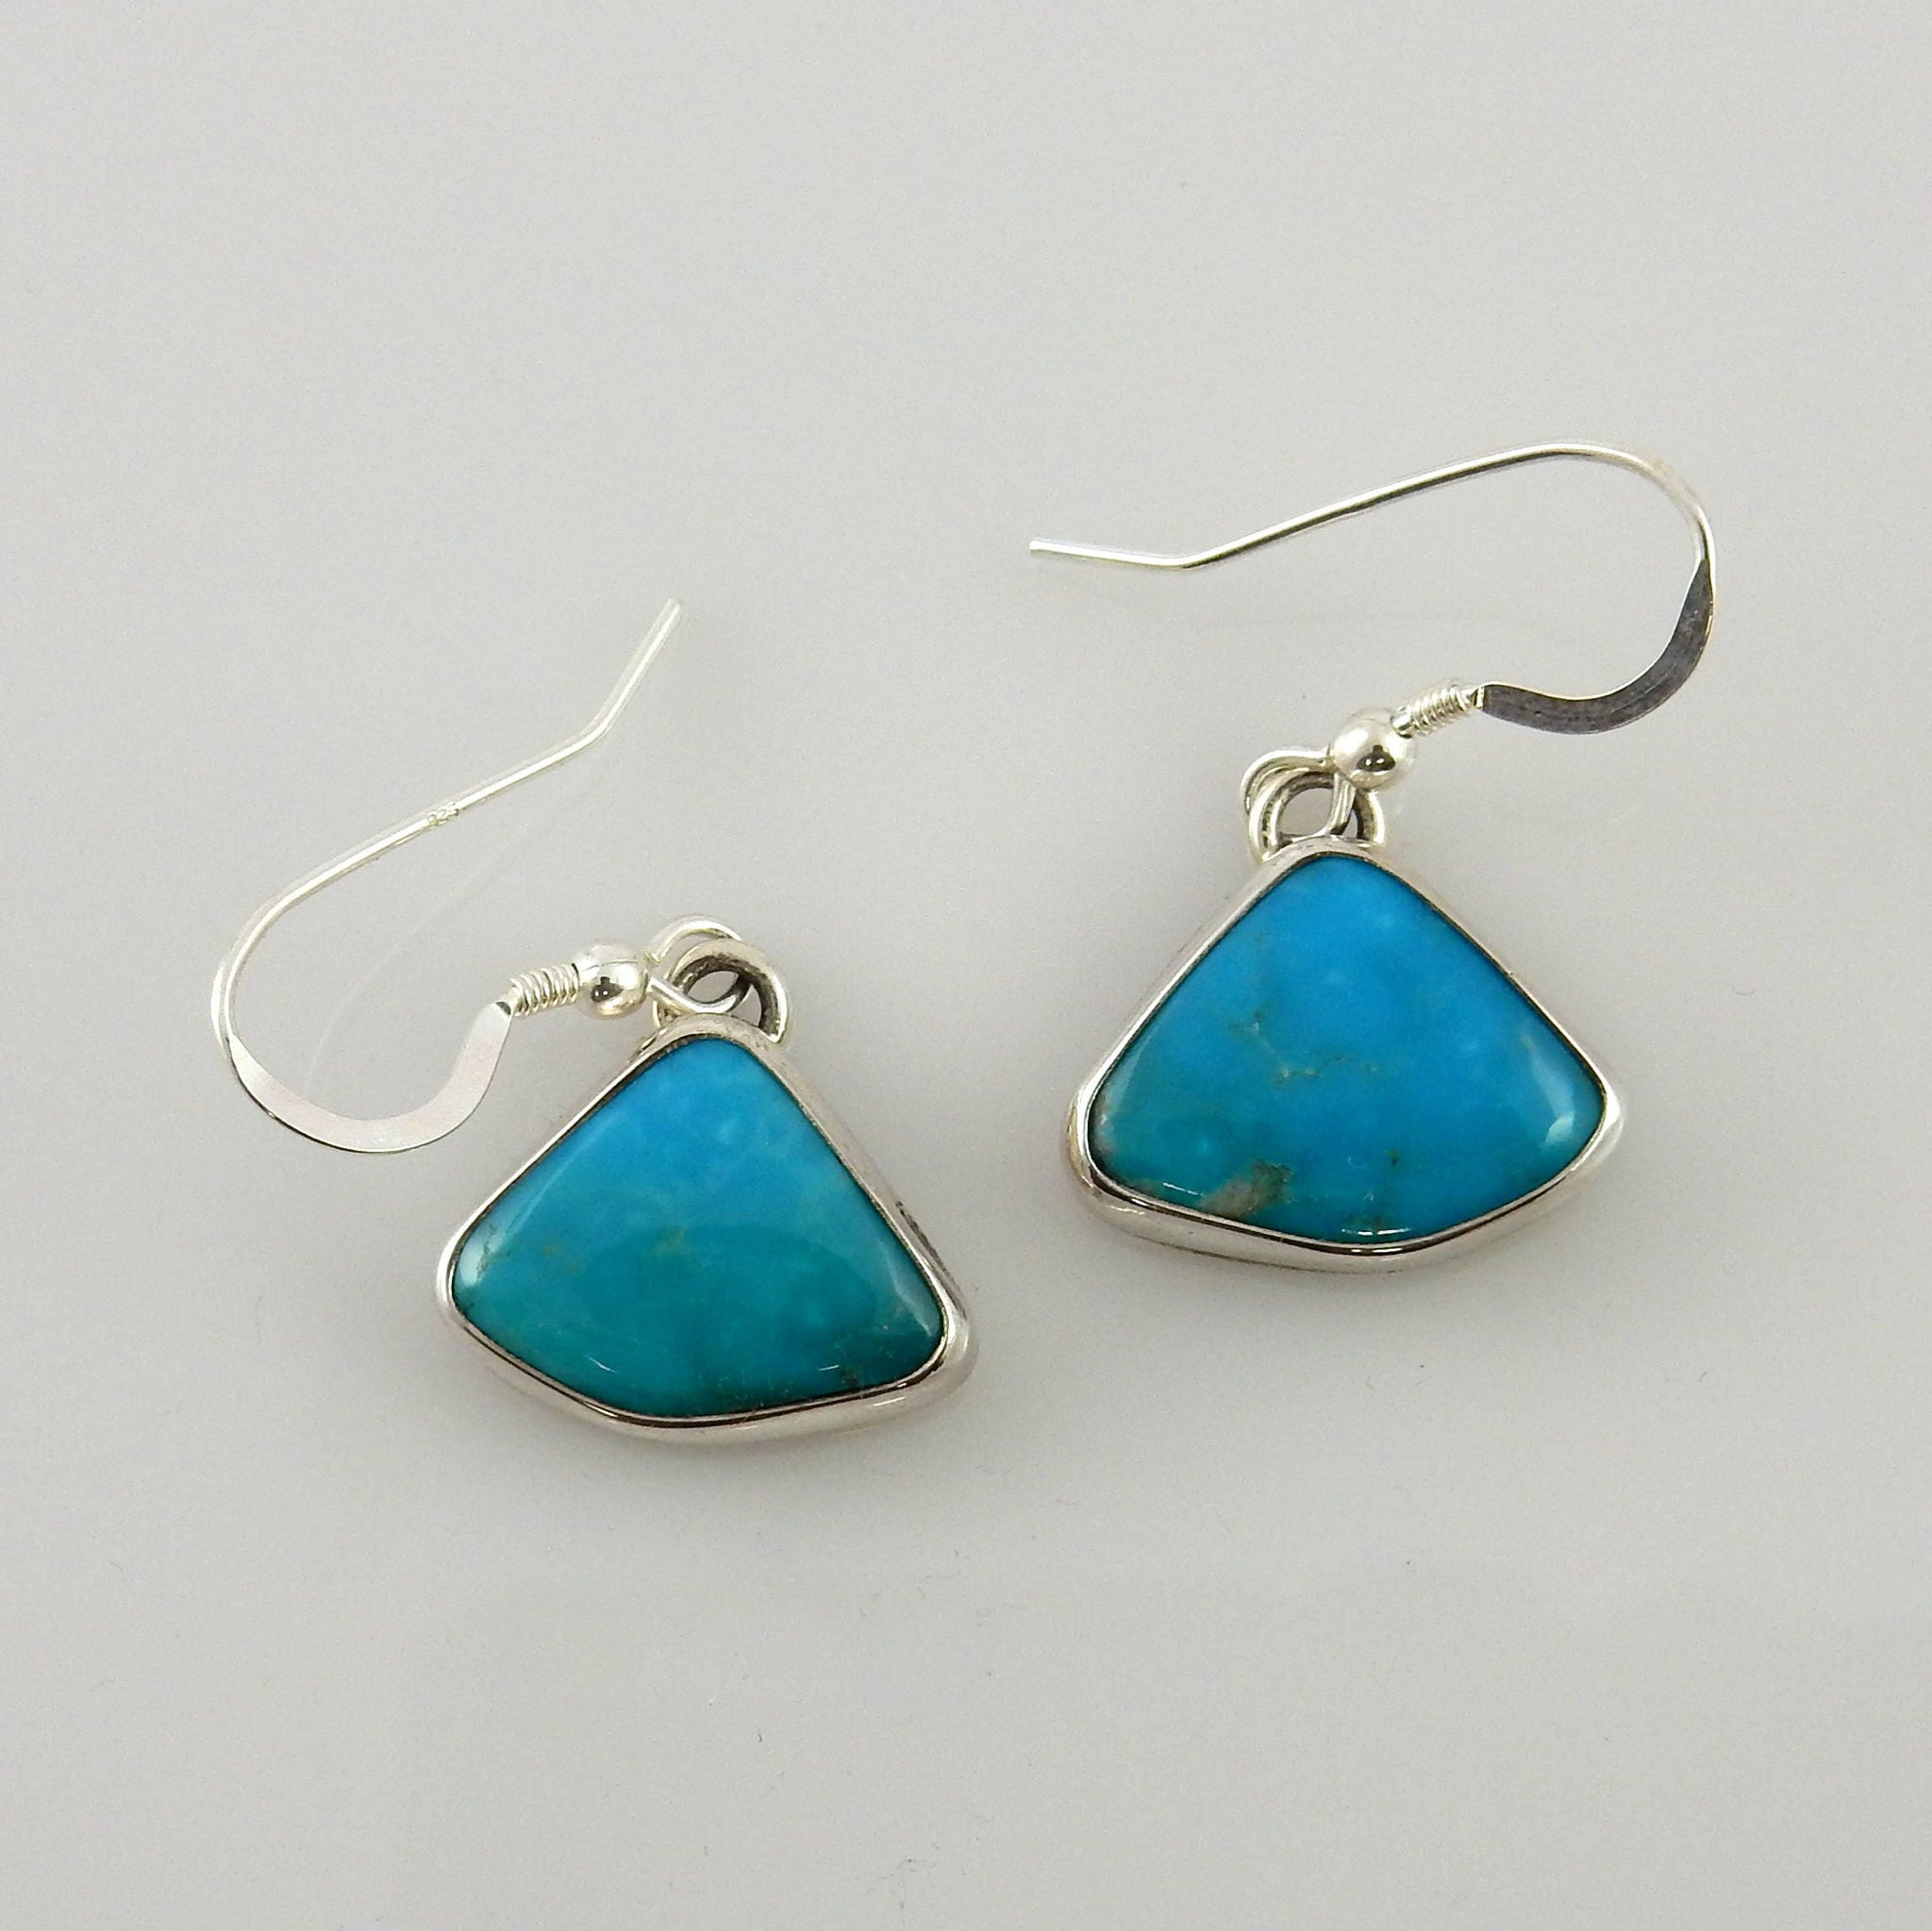 Handmade Silver Turquoise Earrings